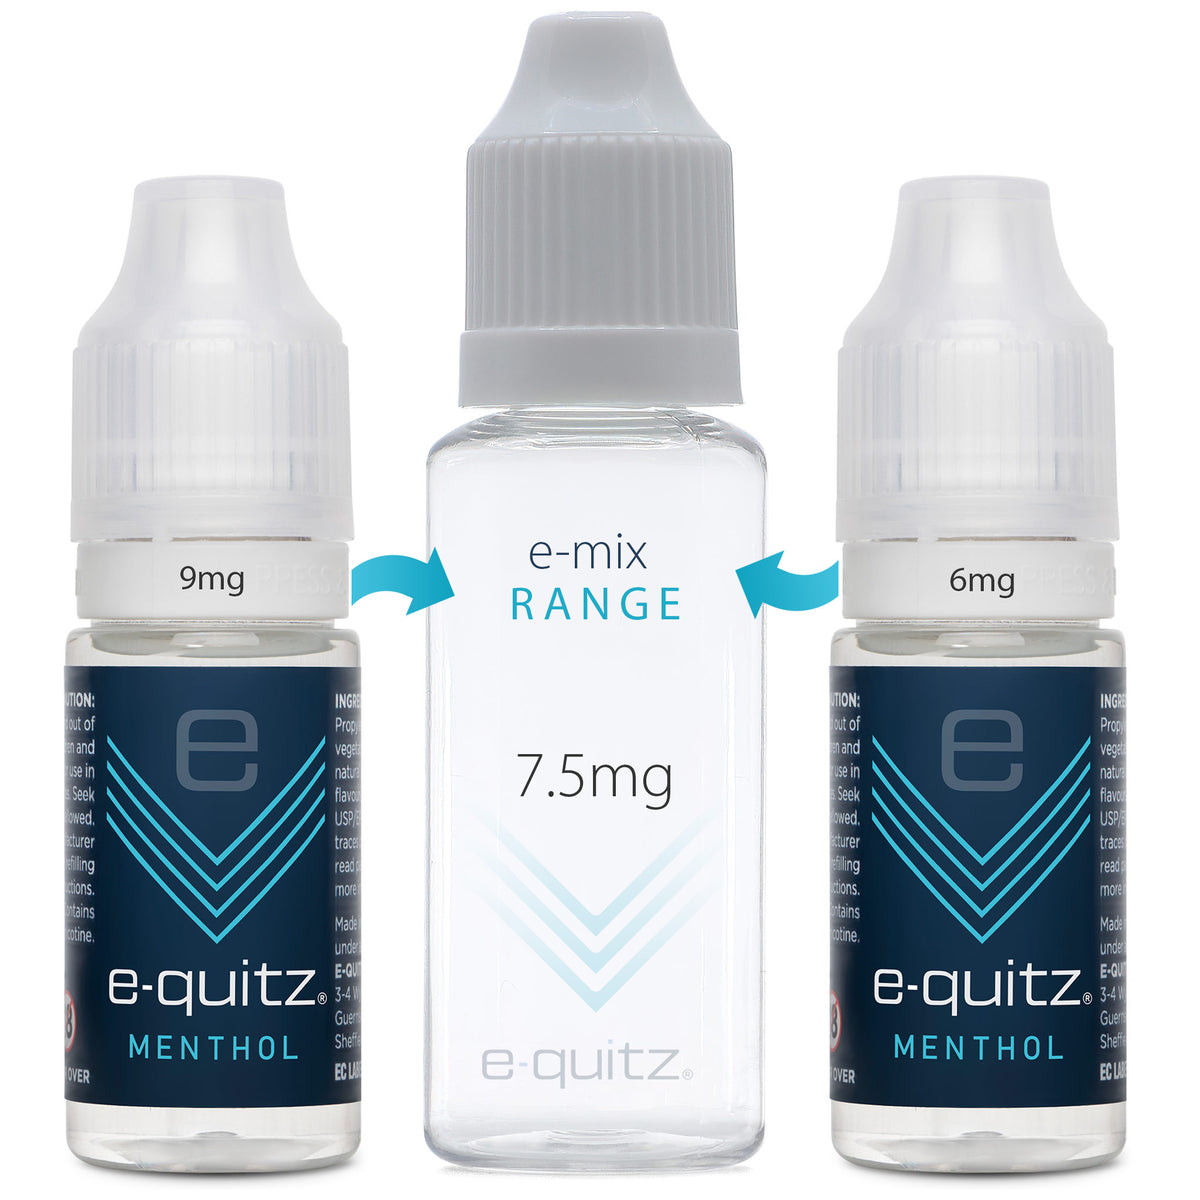 e-quitz 7.5mg menthol e-mix